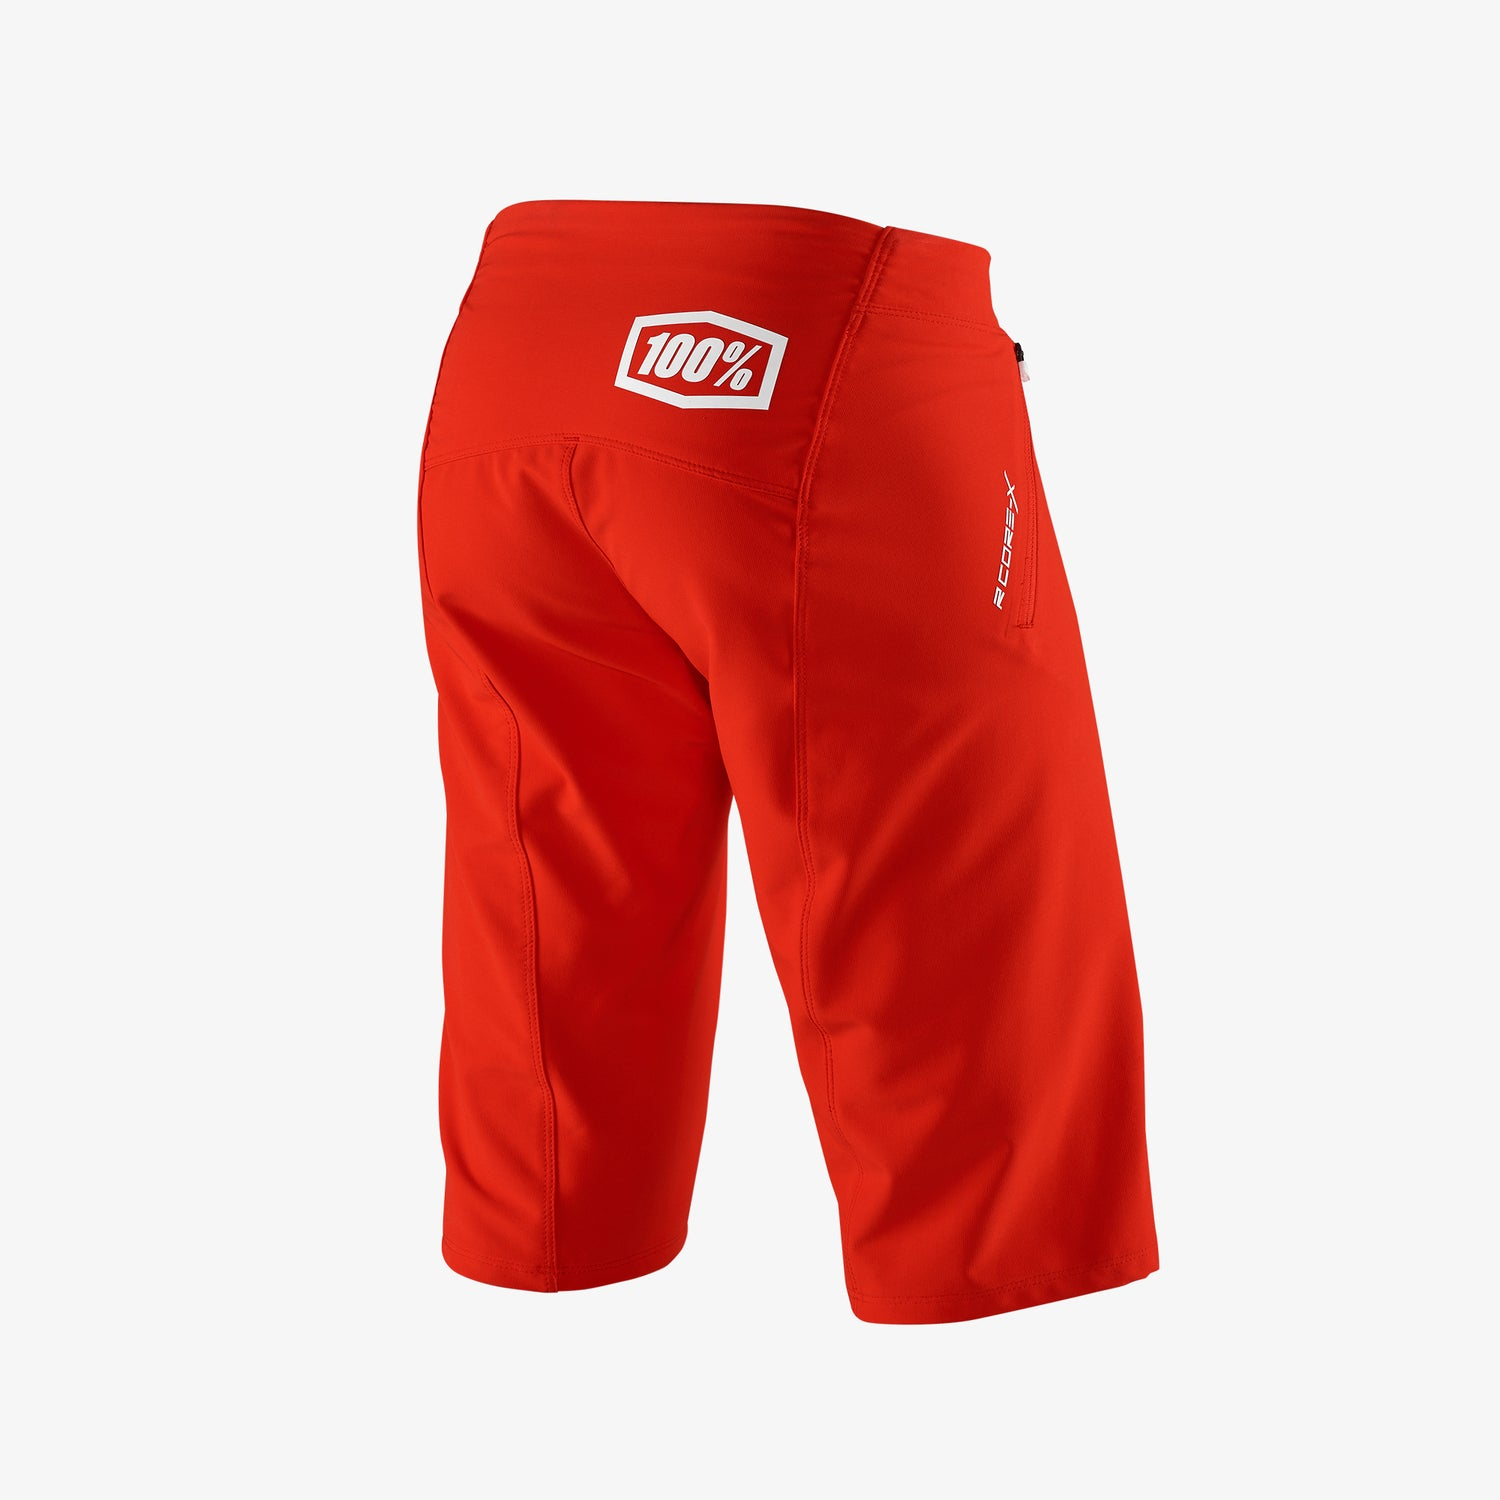 R-CORE-X DH Shorts - Red